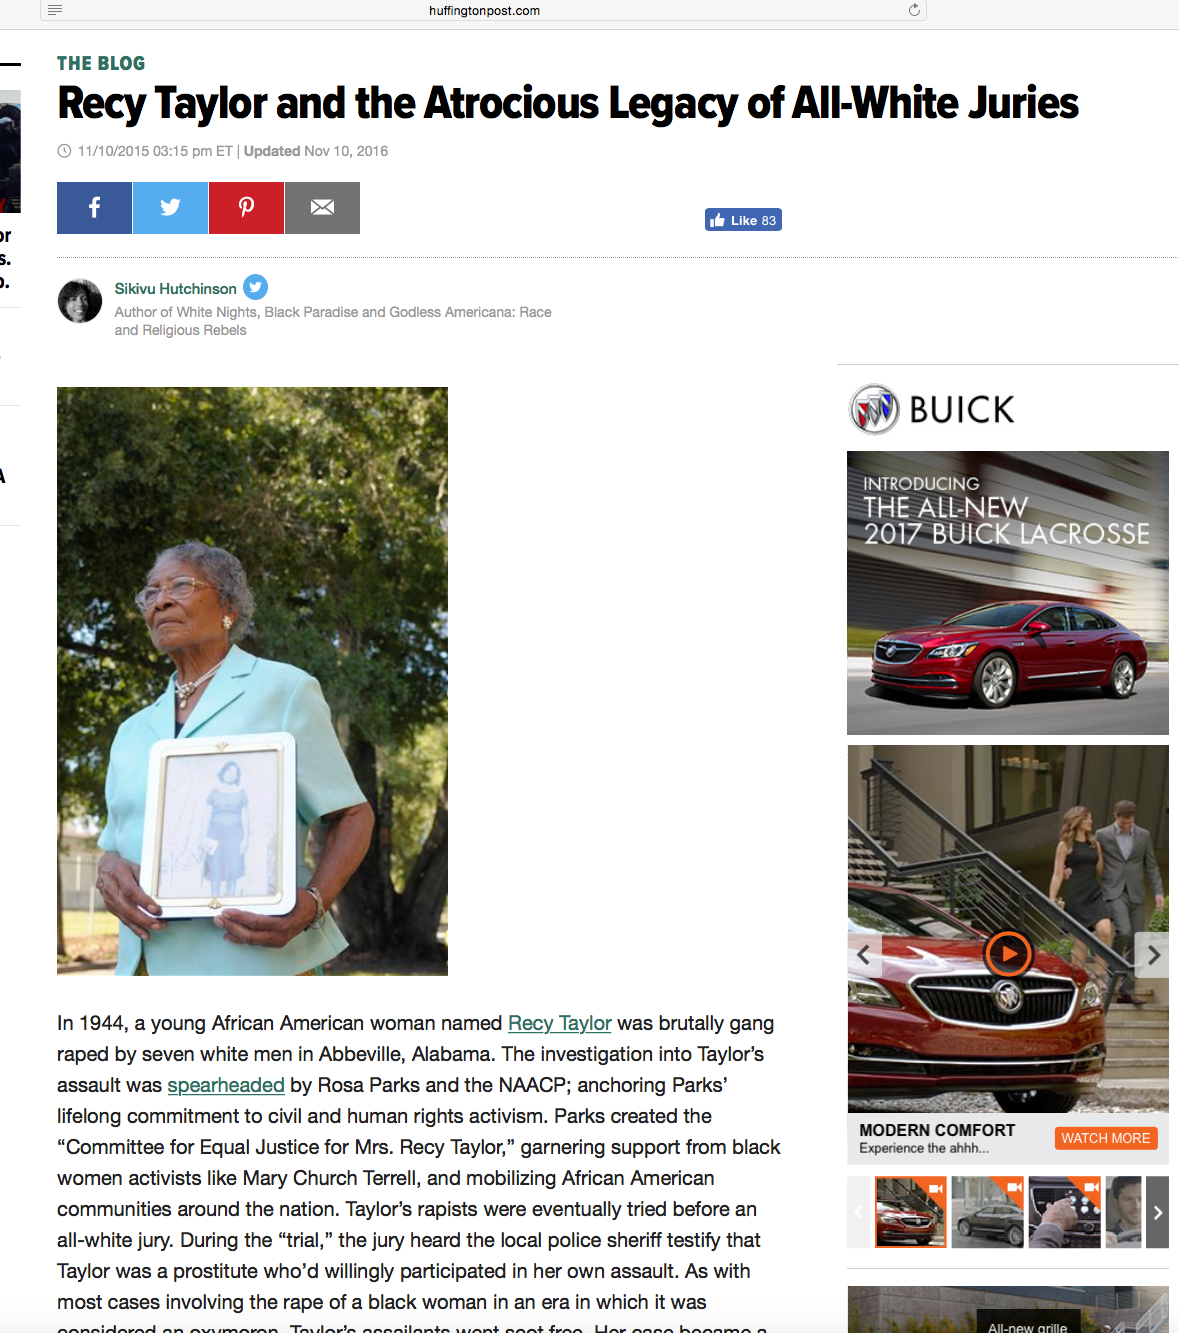 RecyTaylor_HuffPost.png